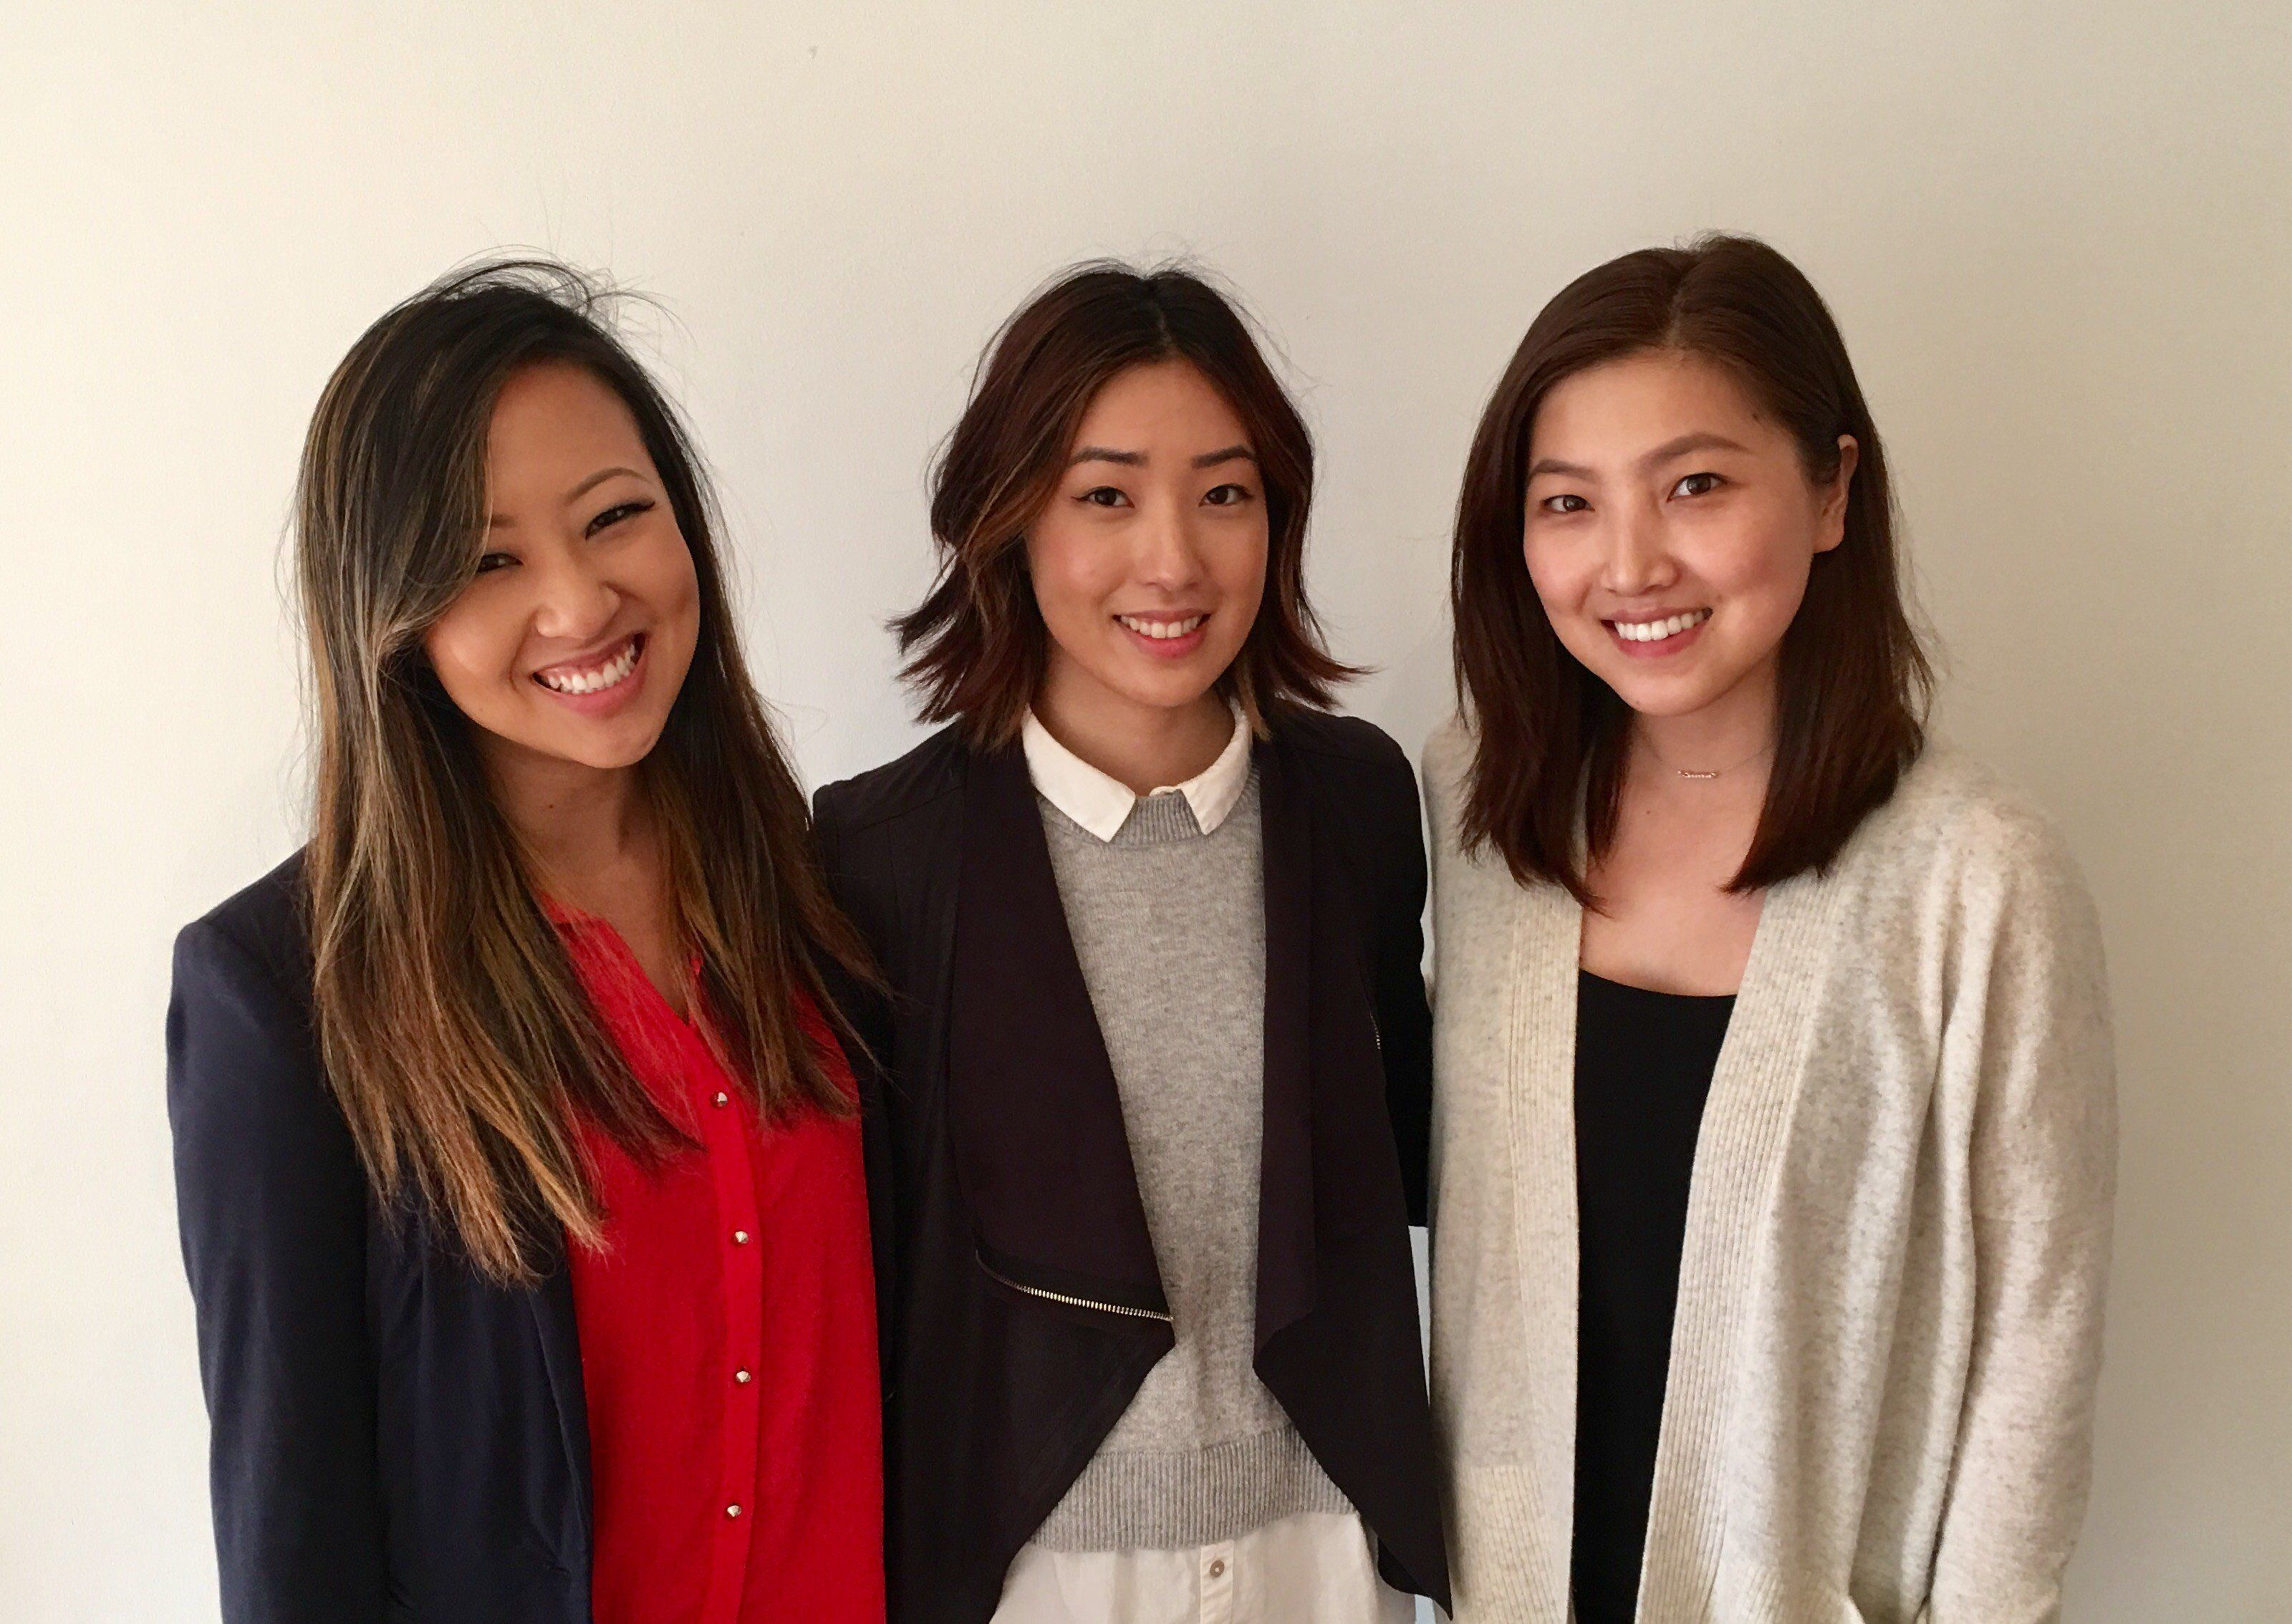 Tech colleaguesAnnie Shin, Tammy Cho and Grace Choi have started a website to help those targeted by sexual harassment.